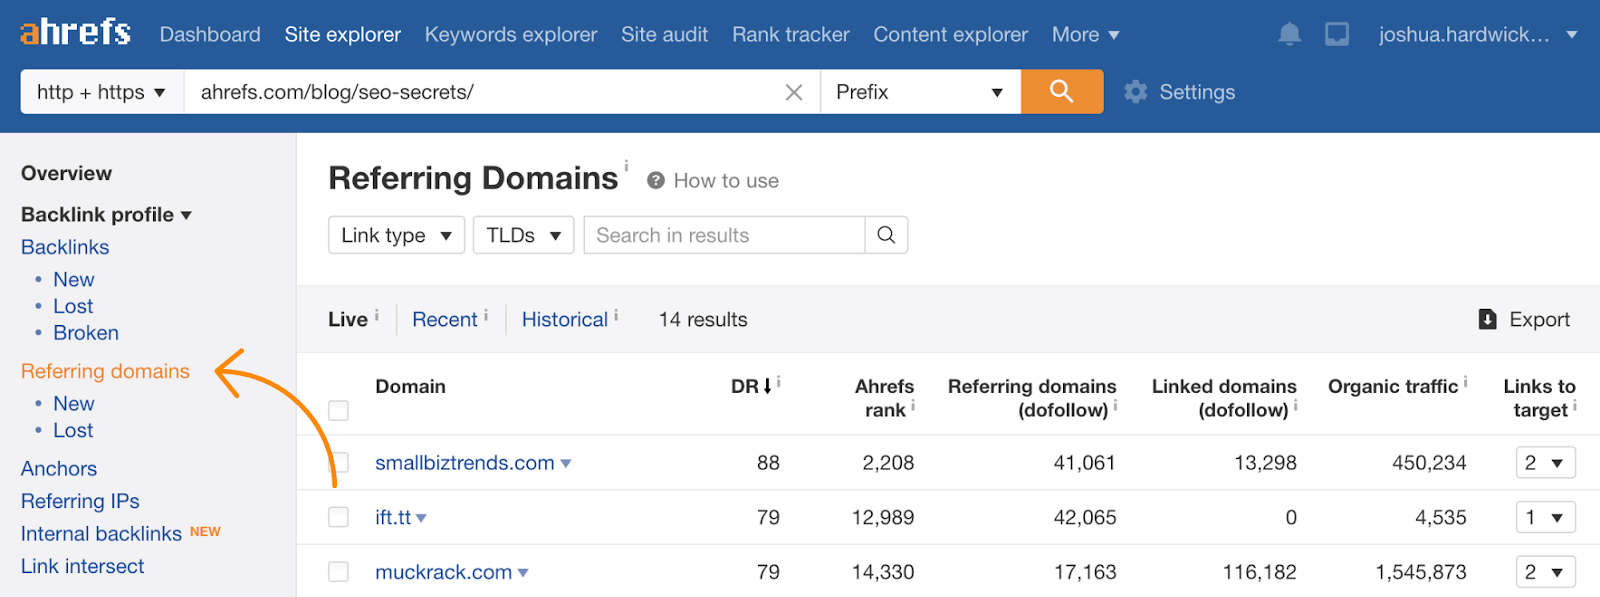 8 referring domains ahrefs